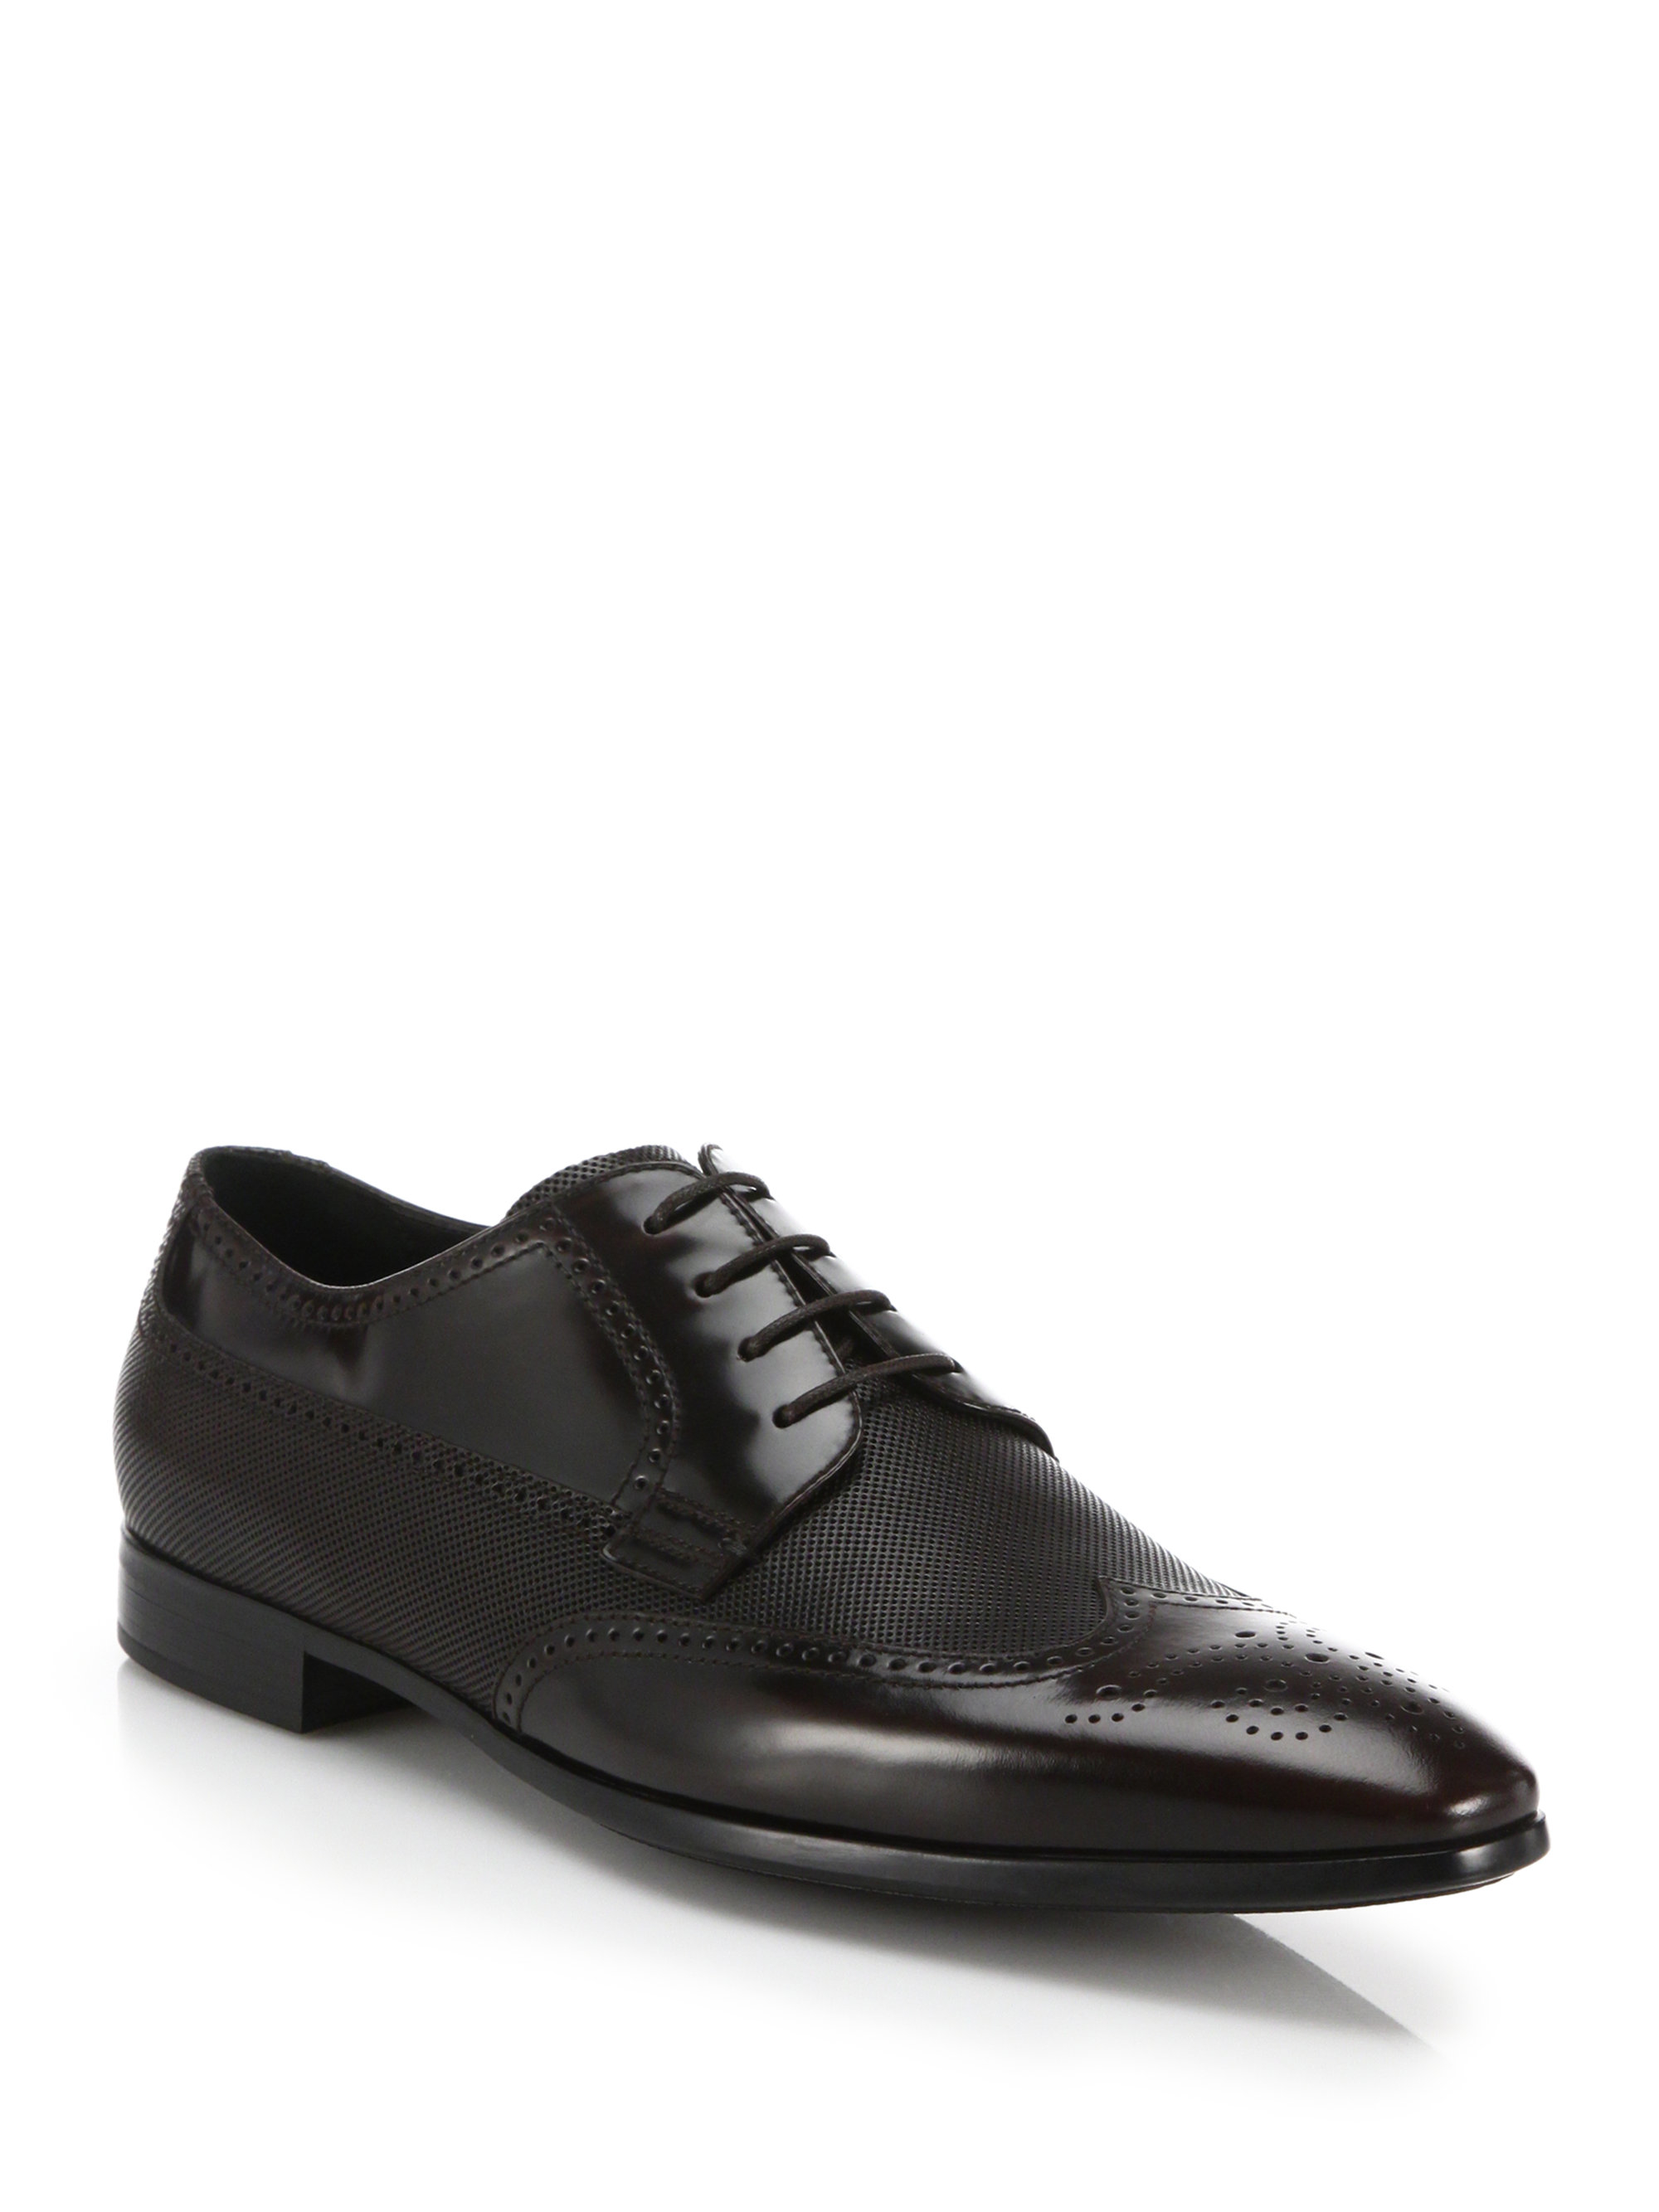 Giorgio armani Leather Wingtip Lace-up Shoes in Brown for ...